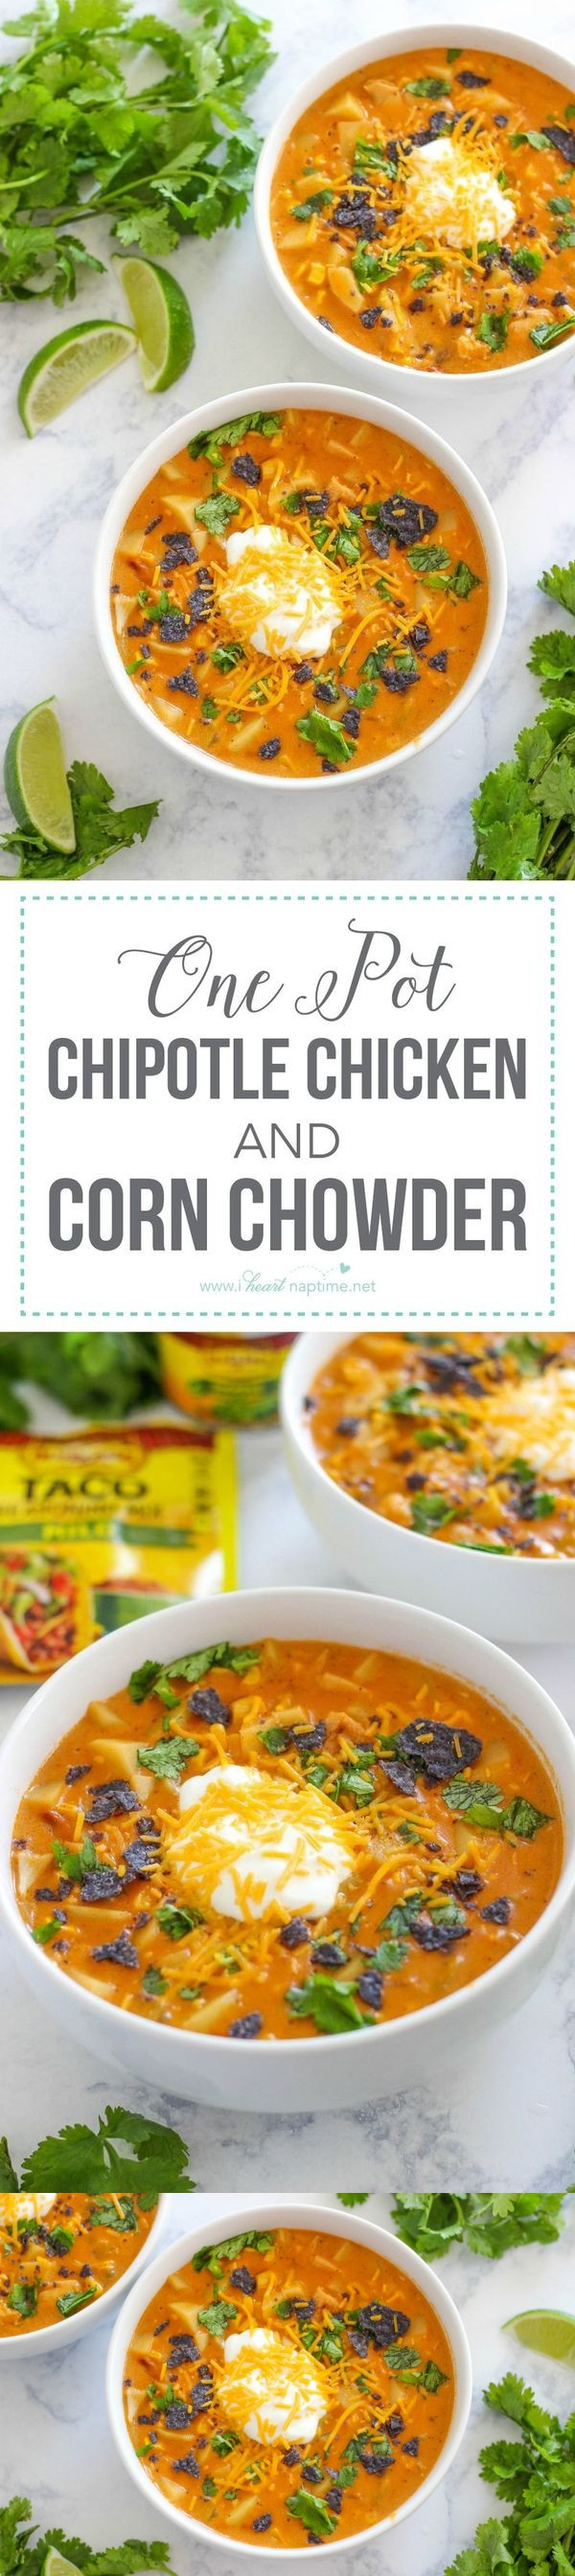 One Pot Chipotle Chicken and Corn Chowder